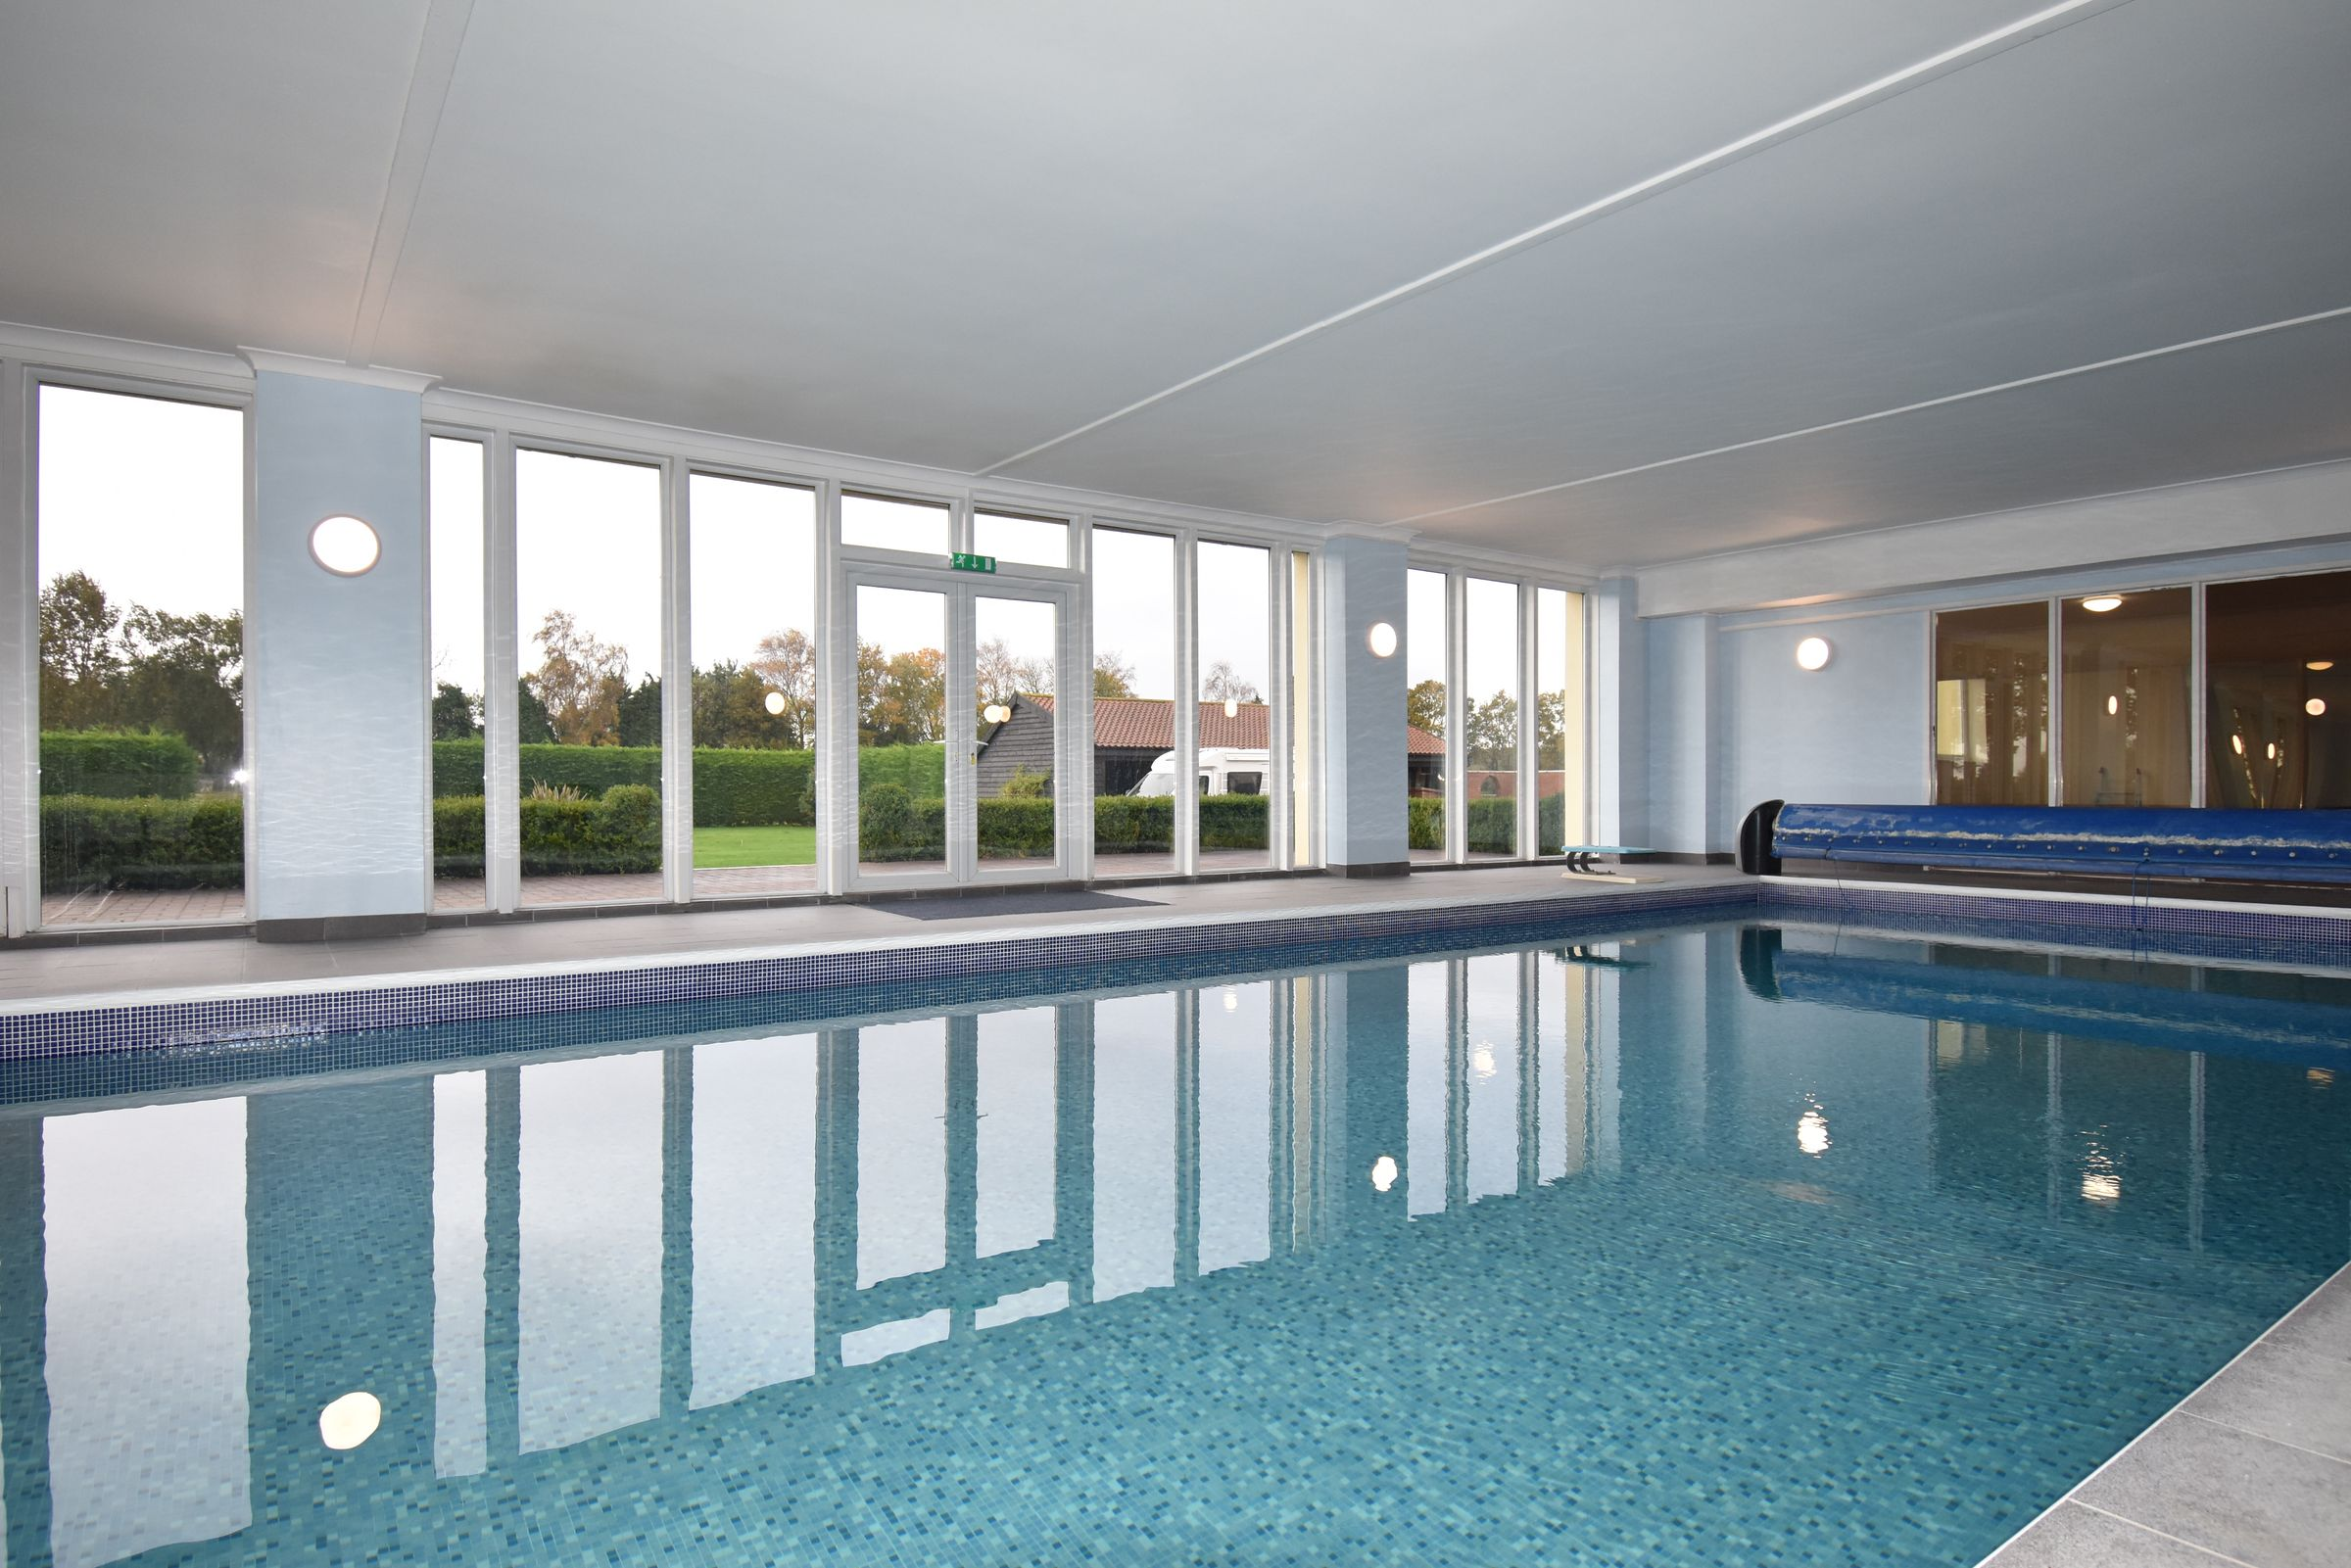 Property photo 1 of 51. Swimming Pool